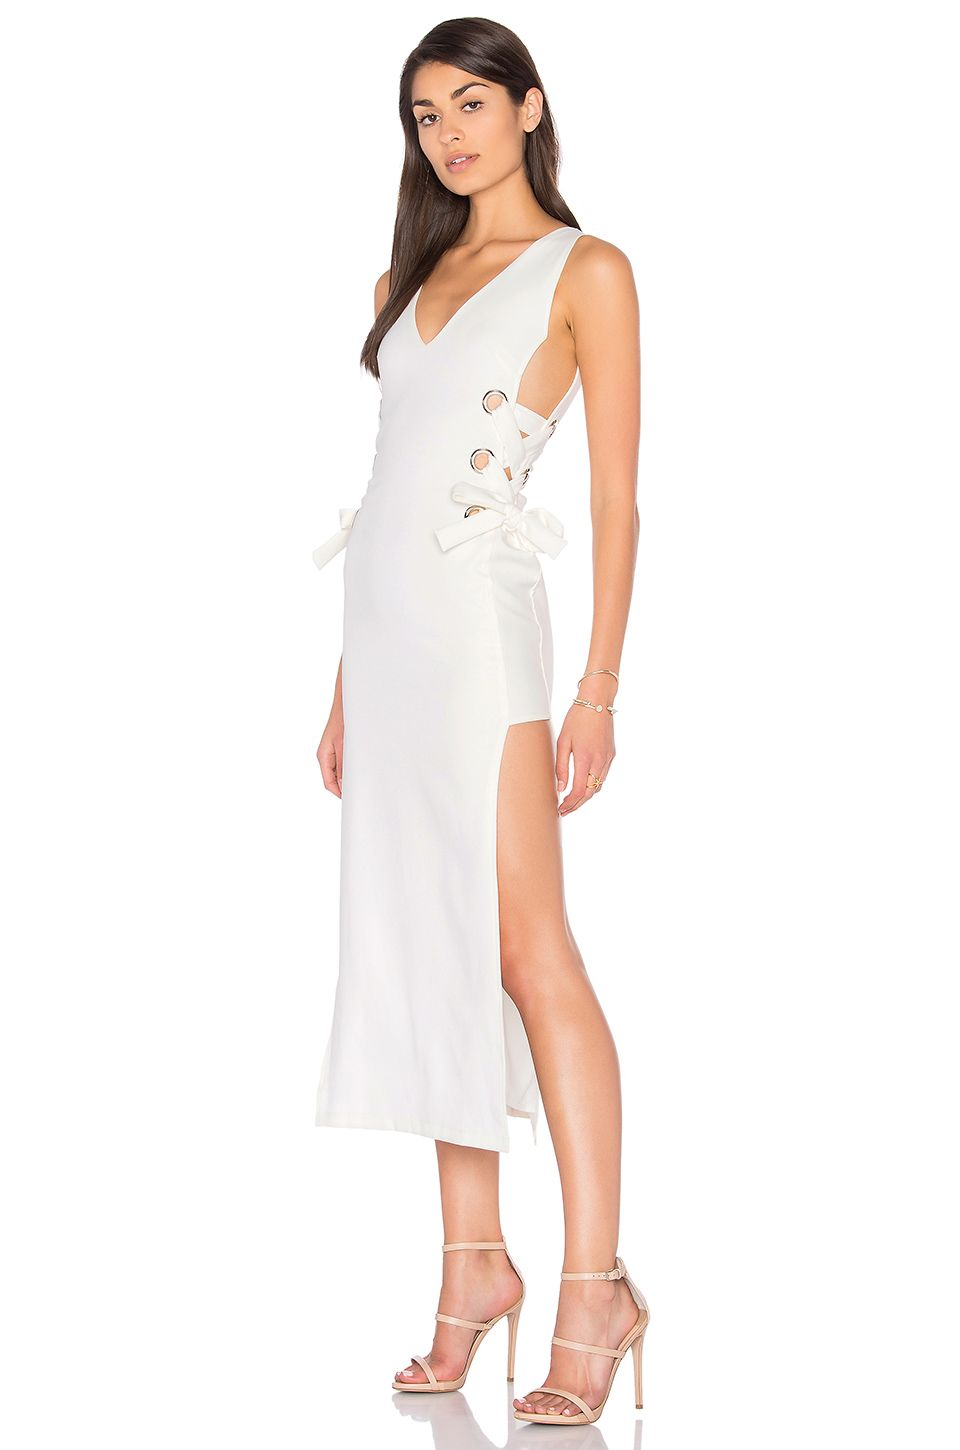 Lioness all tied up russett dress in white revolve a girl can